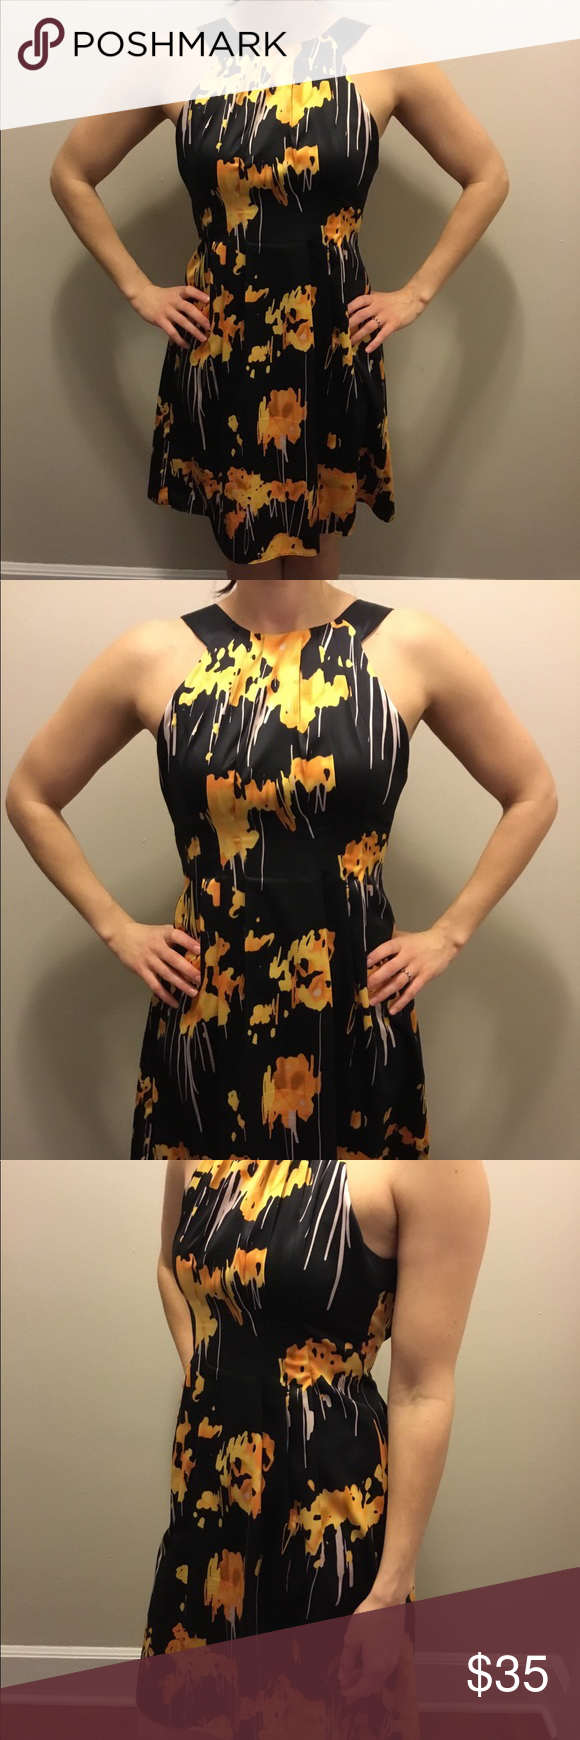 Final Sale Black Dress With Yellow Flowers Clothes Design The Limited Dresses Fashion [ 1740 x 580 Pixel ]